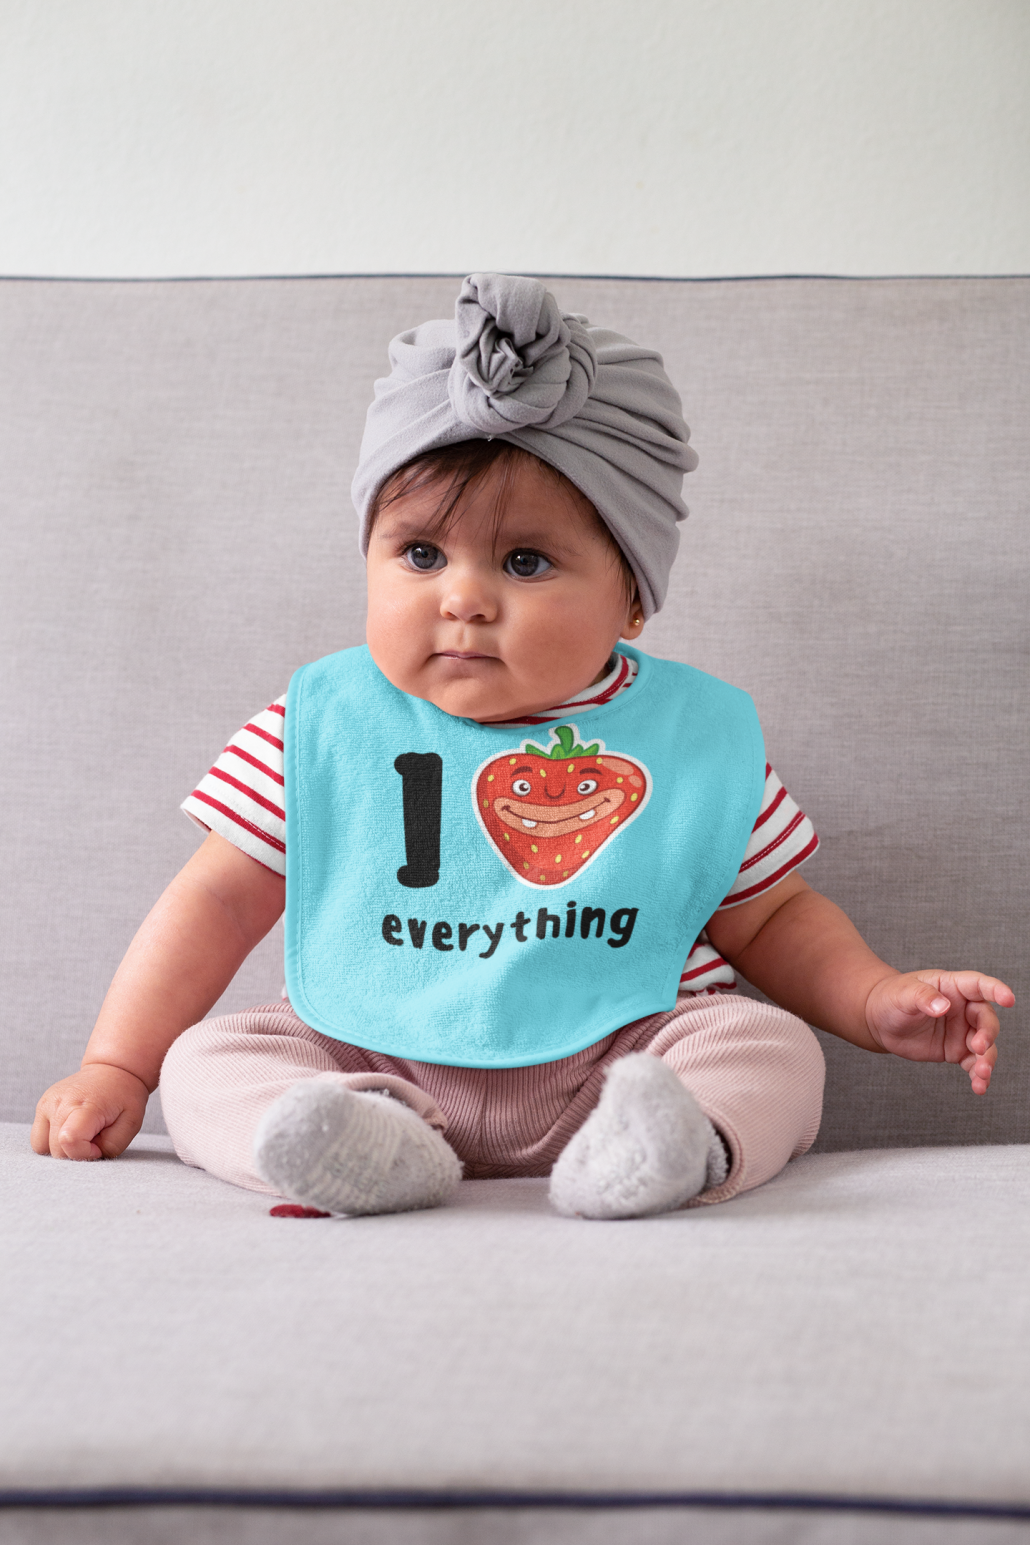 Toddler with custom bib